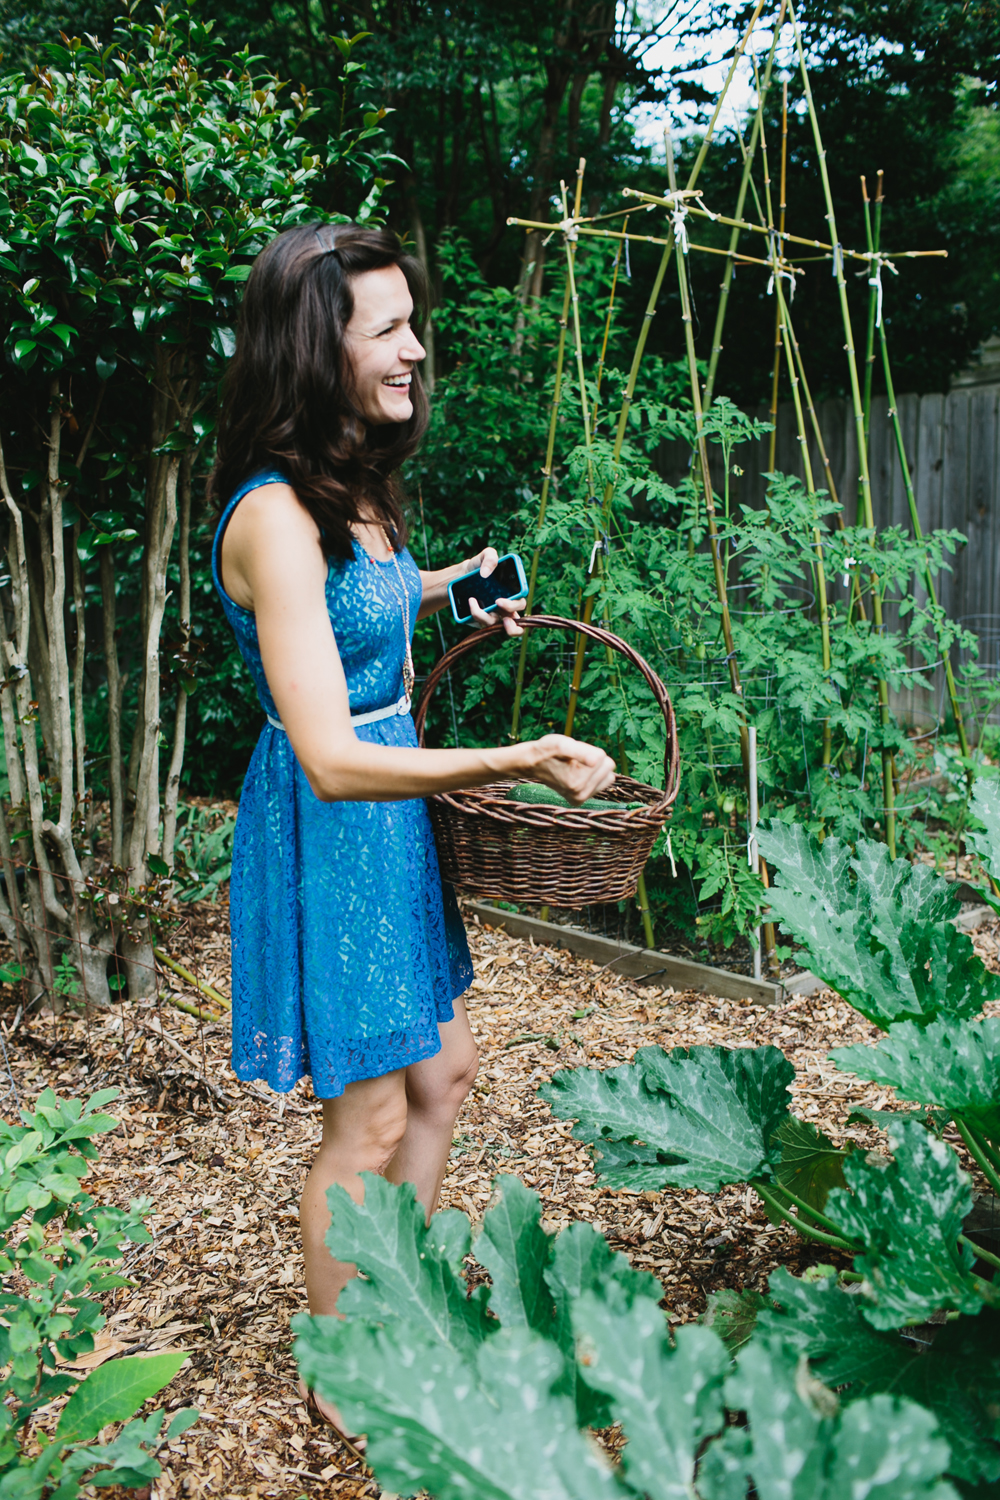 Homespun ATL Garden Dinner June 2013 Atlanta, GA Photography by Rachel Iliadis_Web083.jpg